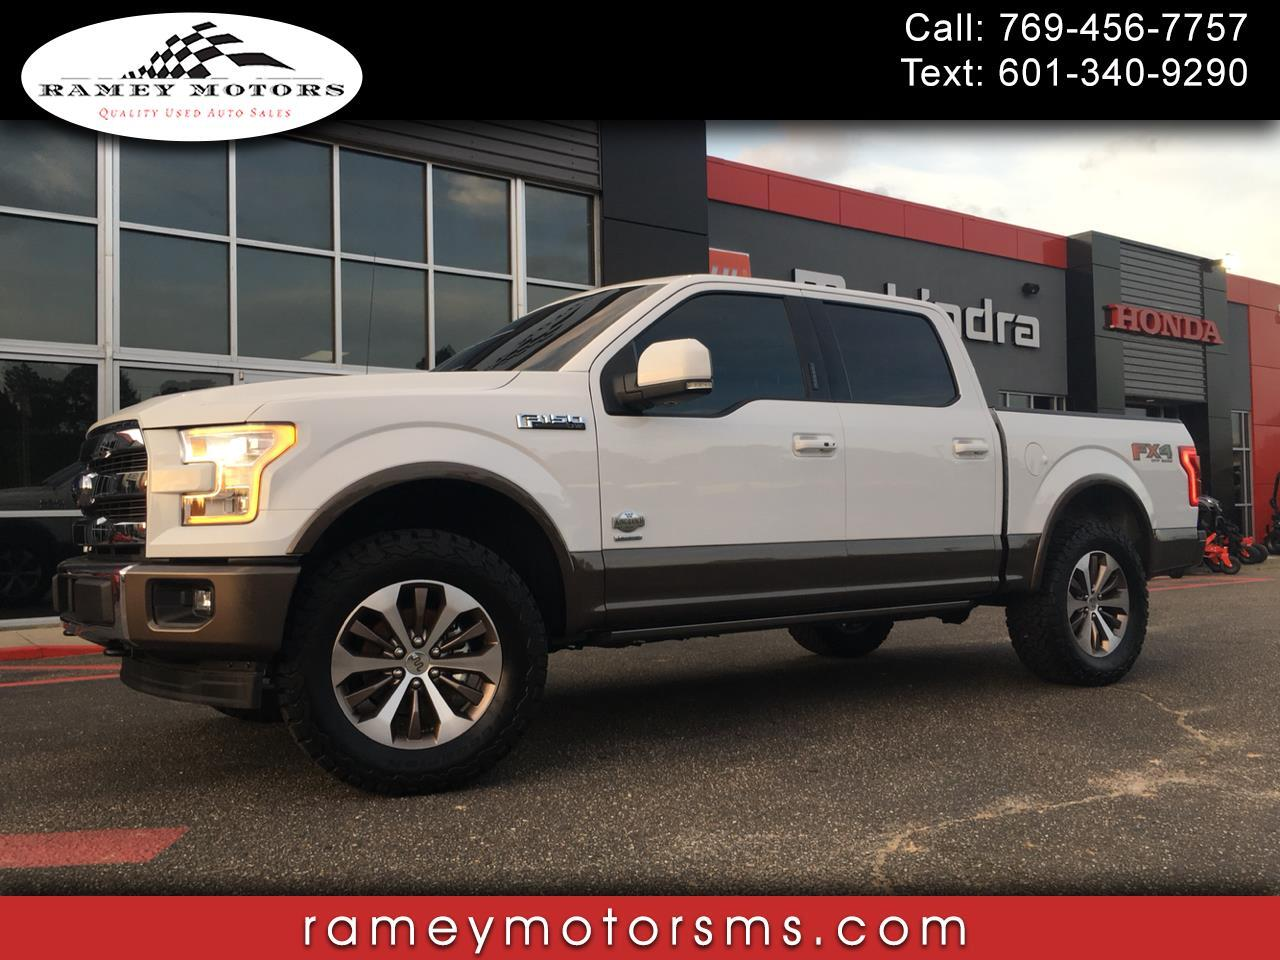 2017 Ford F-150 4WD CREWCAB KING RANCH